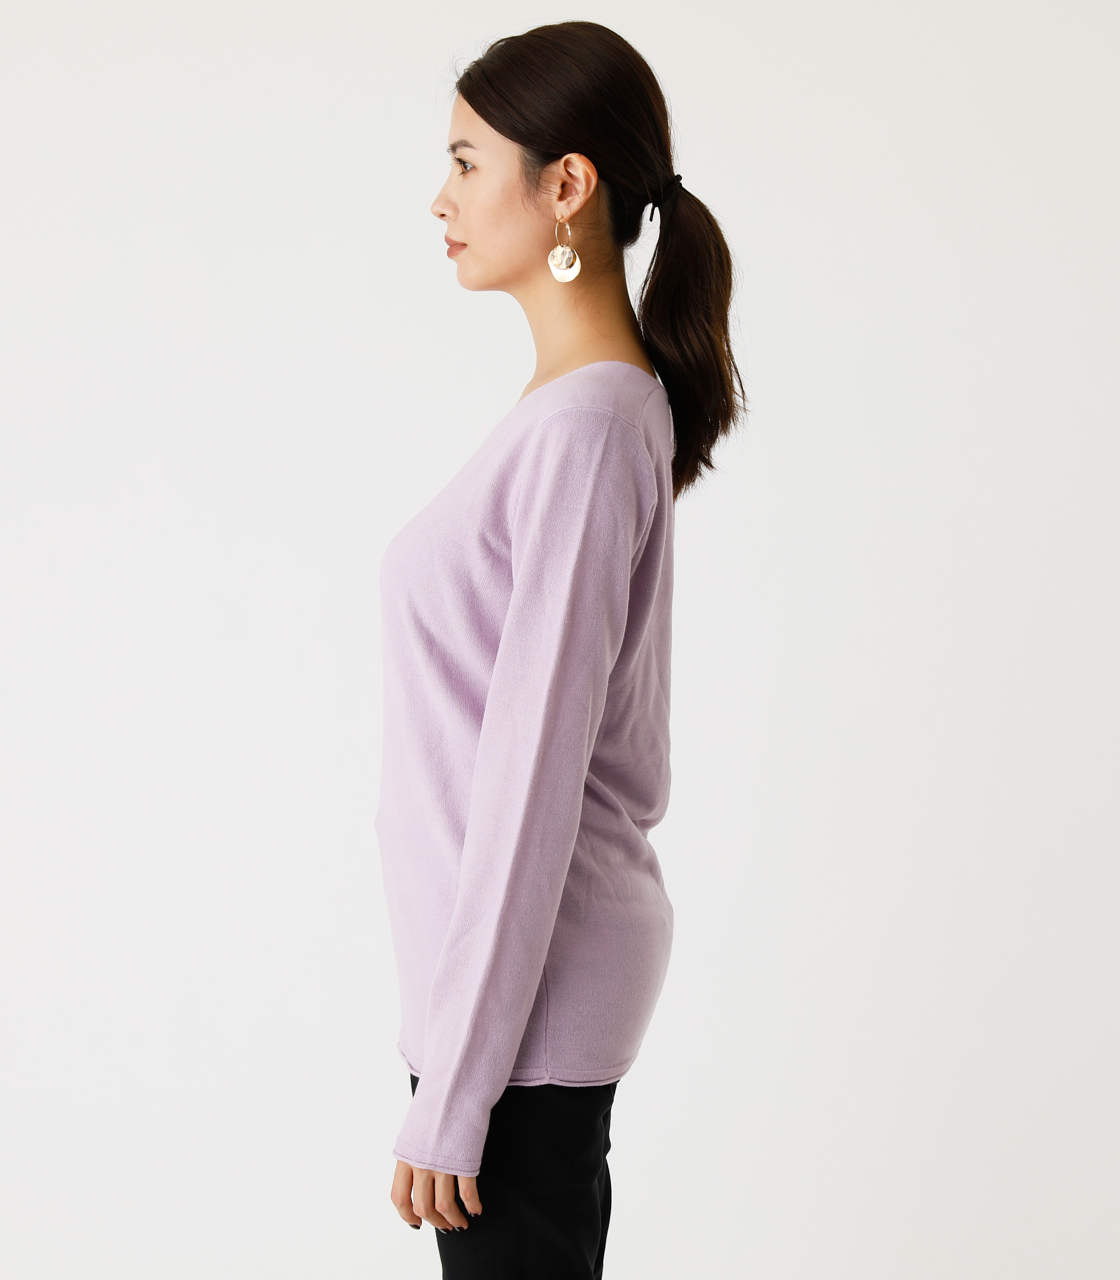 NUDIE V/N KNIT TOPS Ⅲ/ヌーディーVネックニットトップスⅢ 詳細画像 L/PUR 5